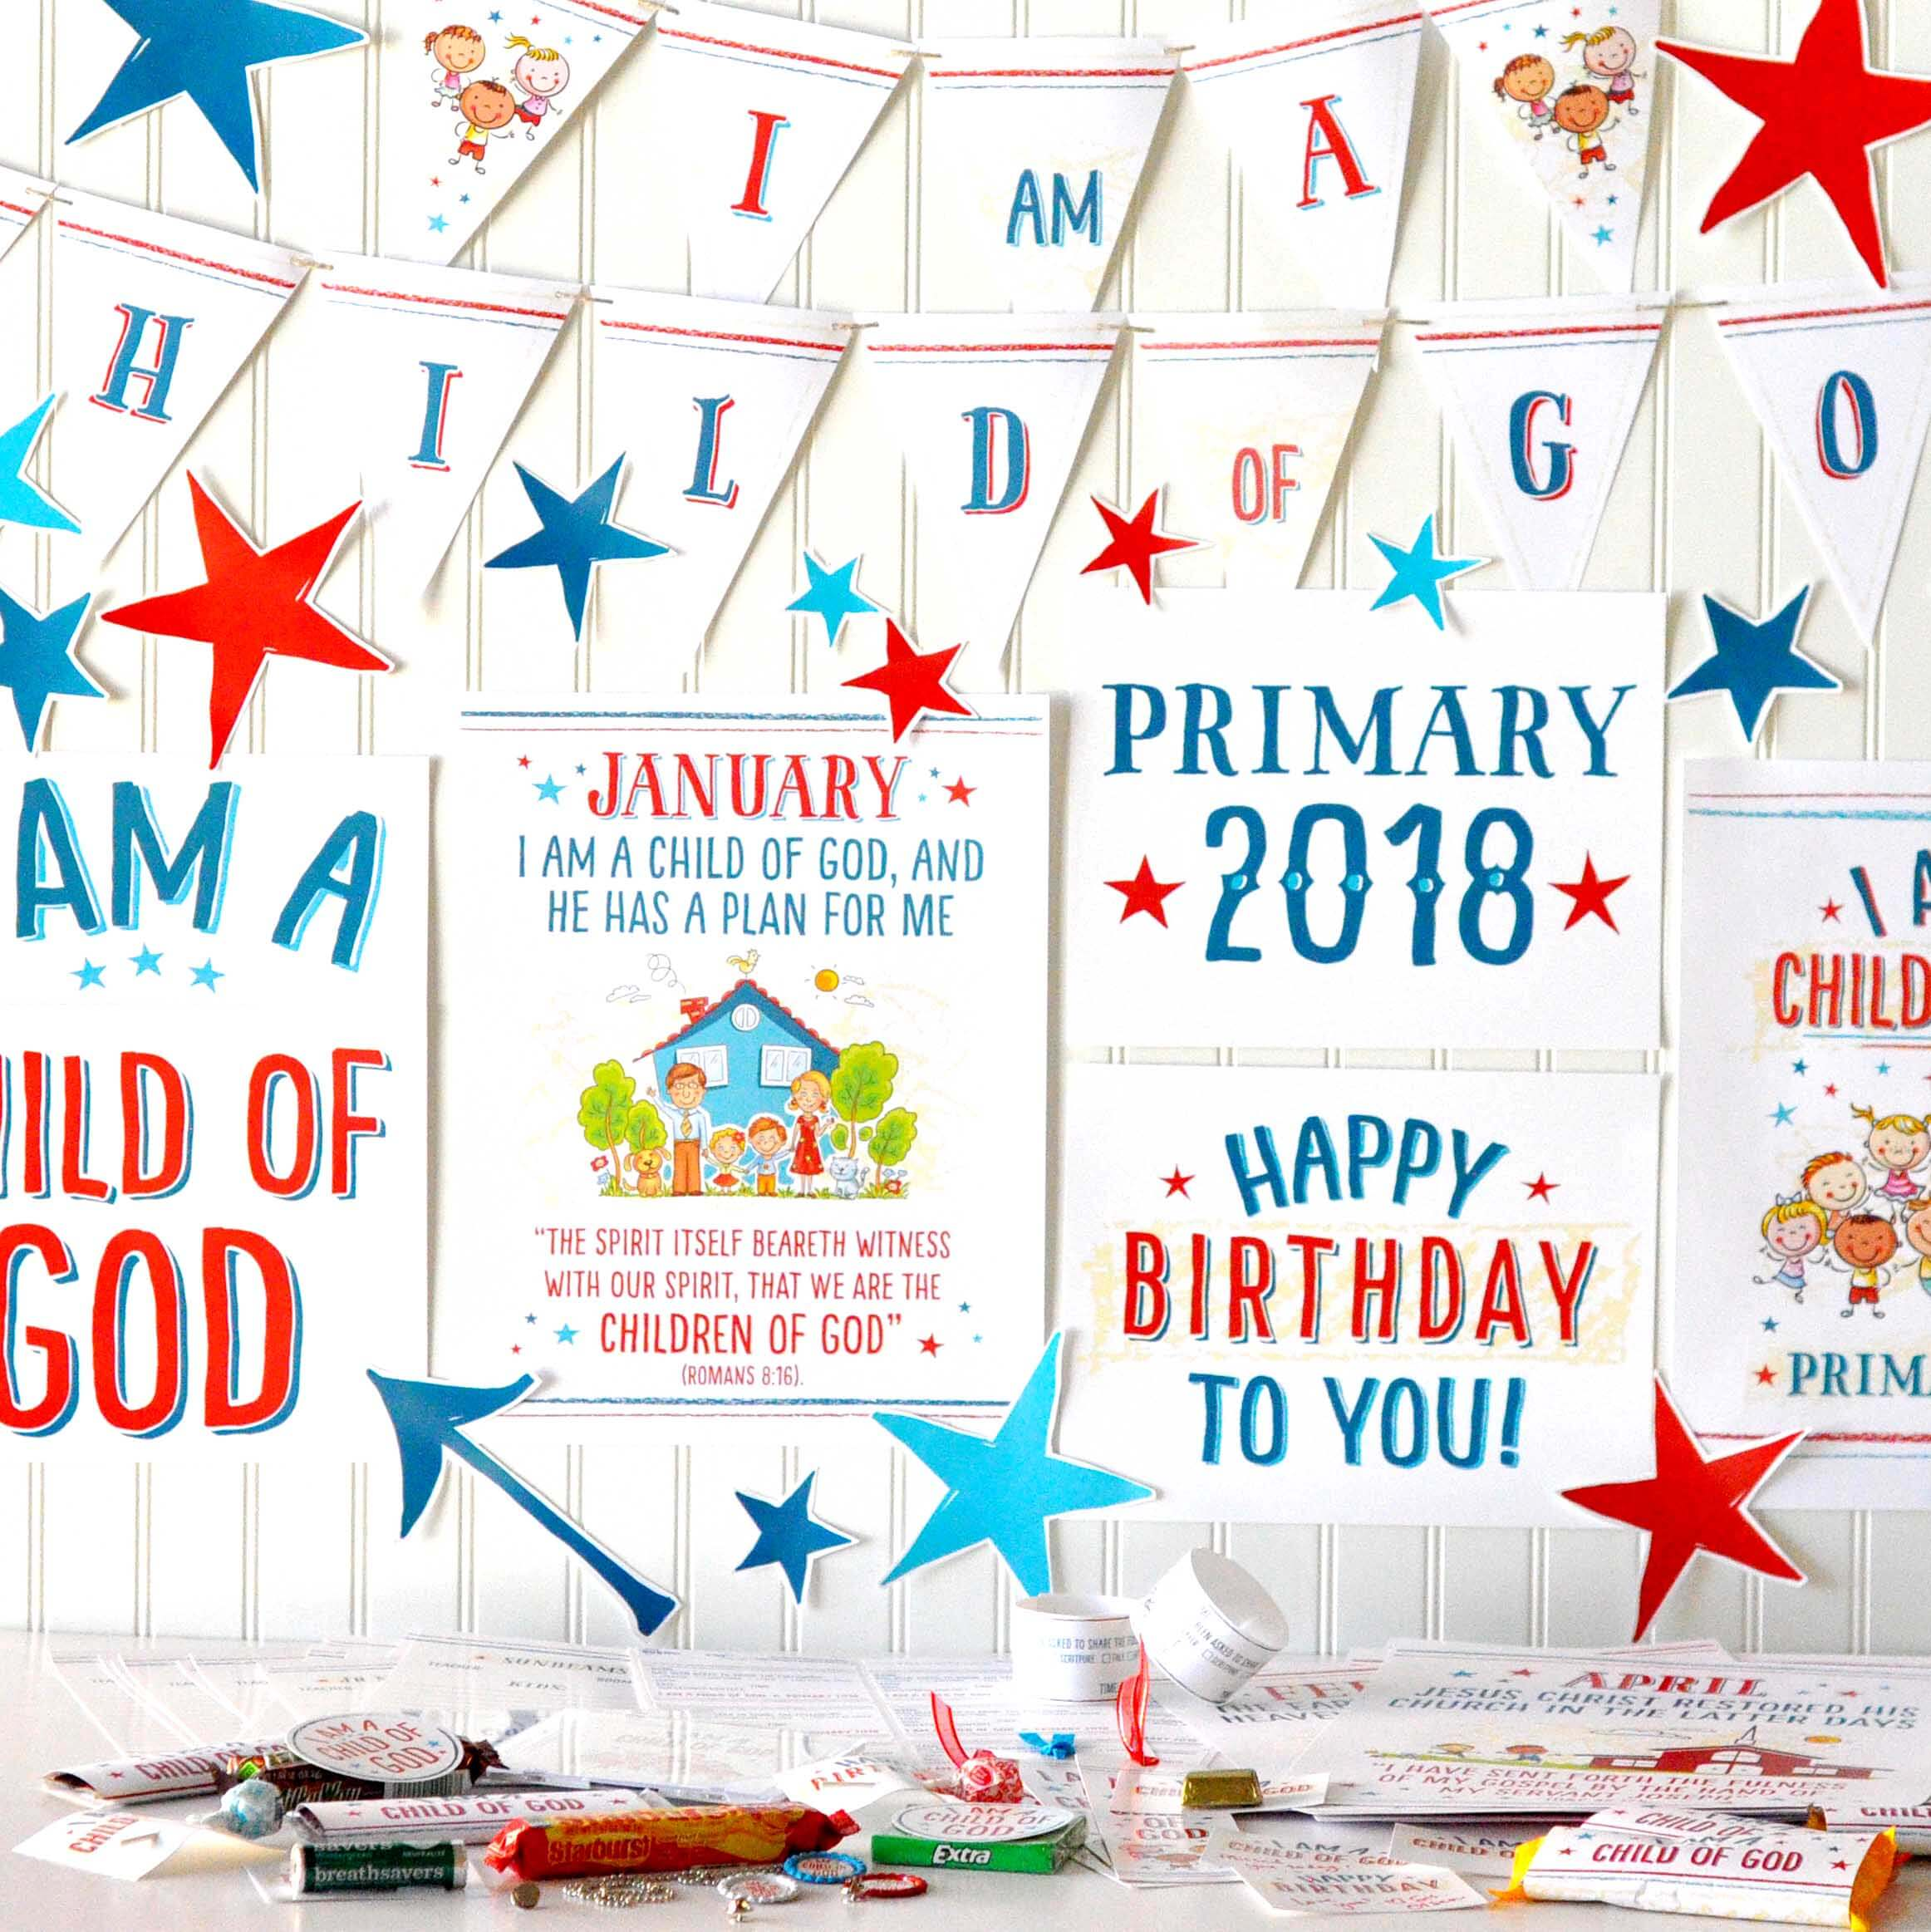 image relating to I Am a Child of God Printable identified as Key 2018 I Am a Kid of God Printable Package - Teepee Female